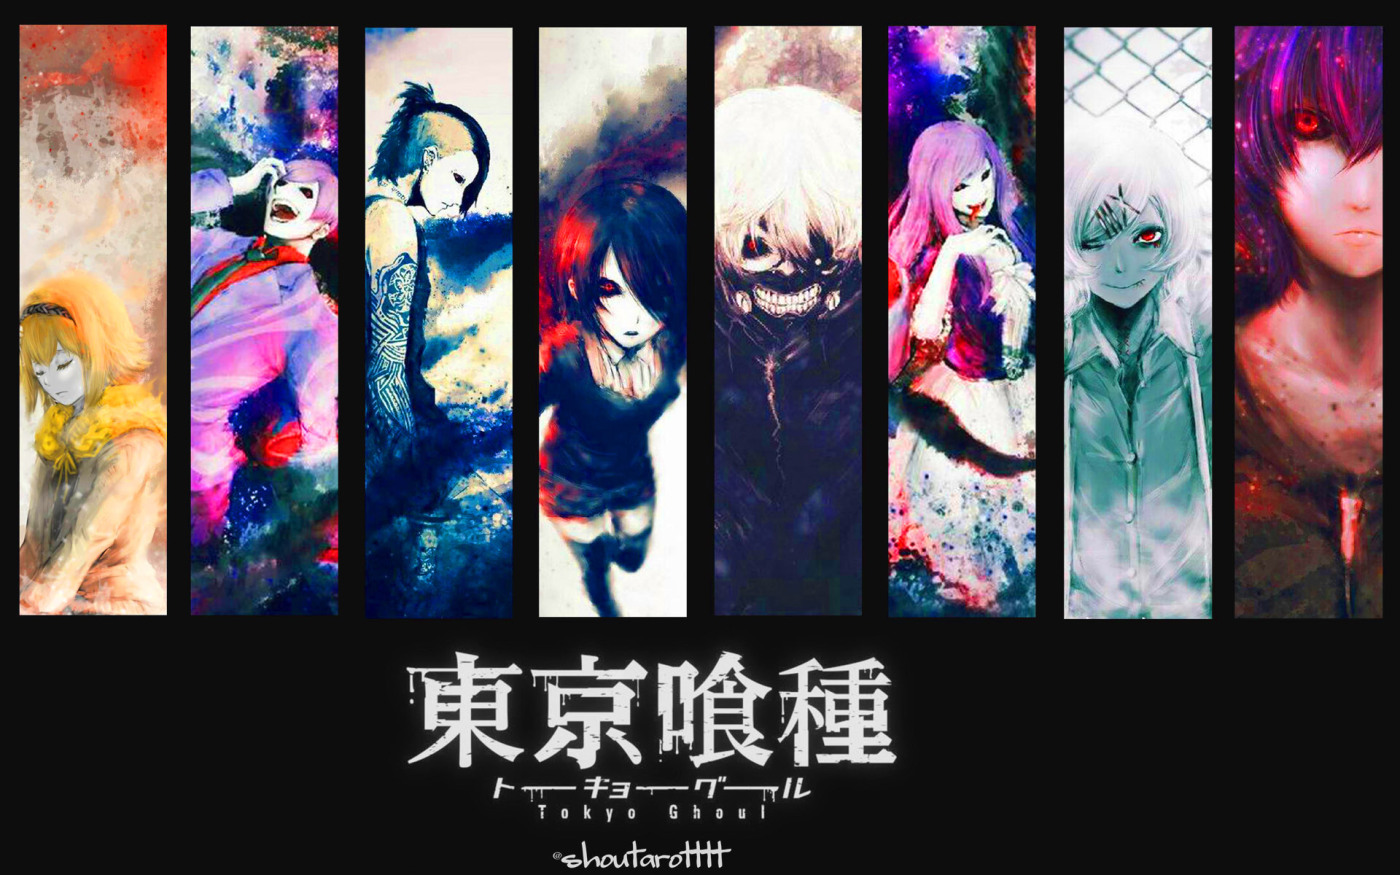 Free download Tokyo Ghoul Characters Anime Wallpaper